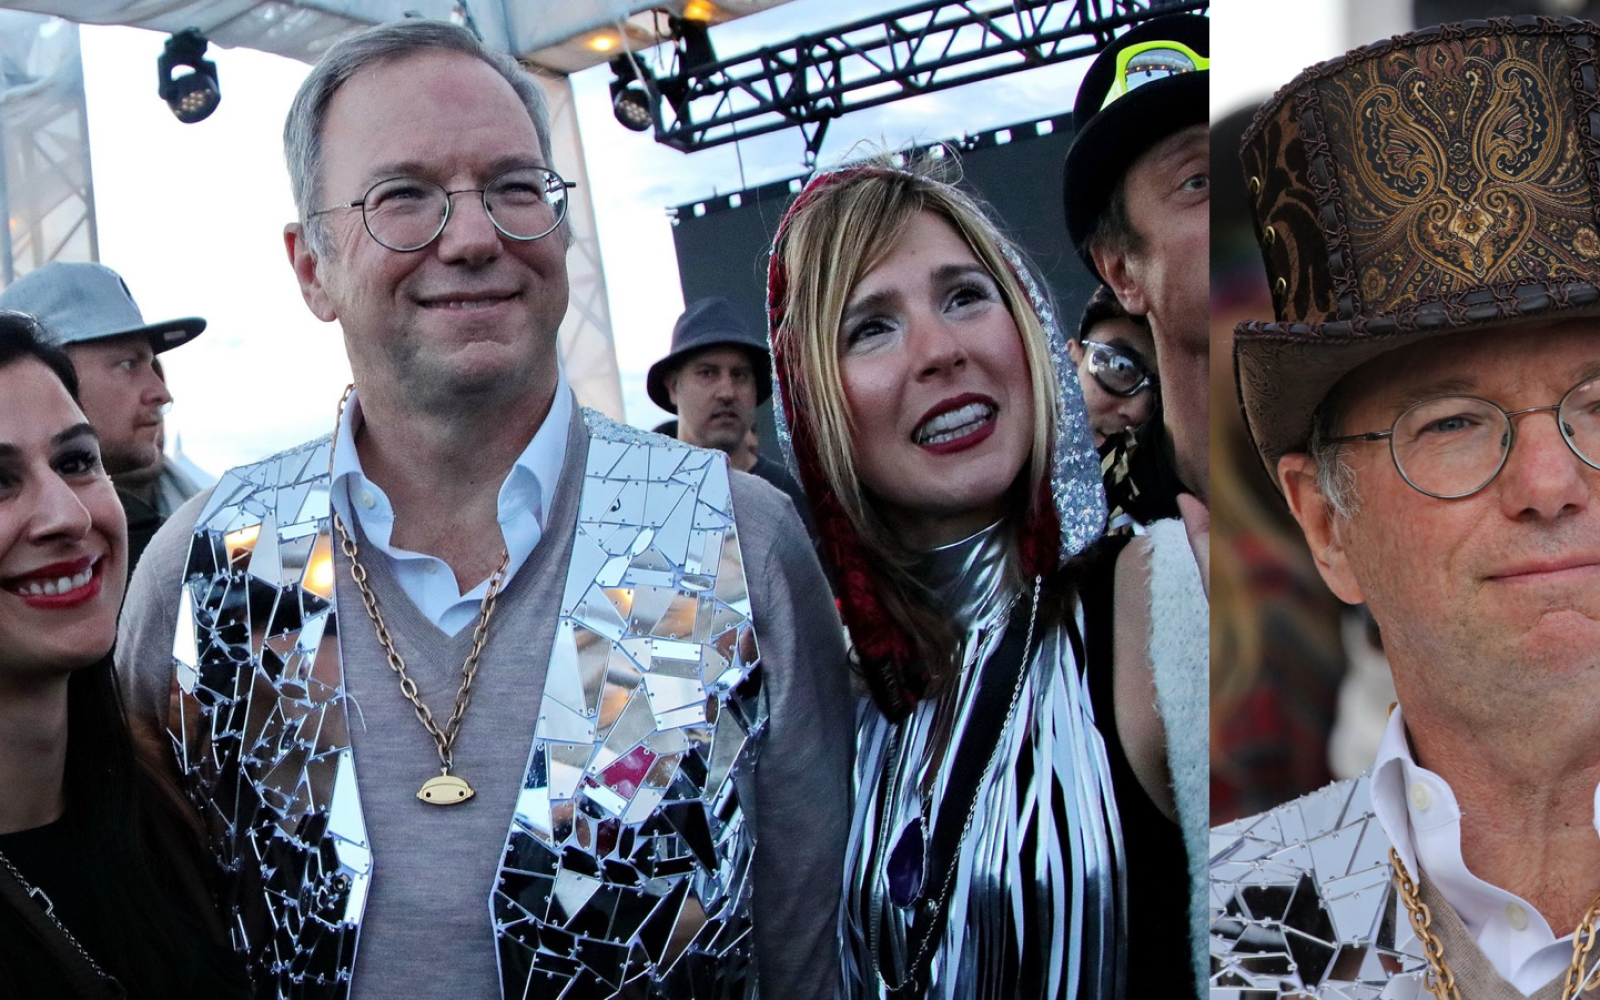 Eric Schmidt attended a 'Burning Man for the 1%' desert party with 'unabashed luxury'